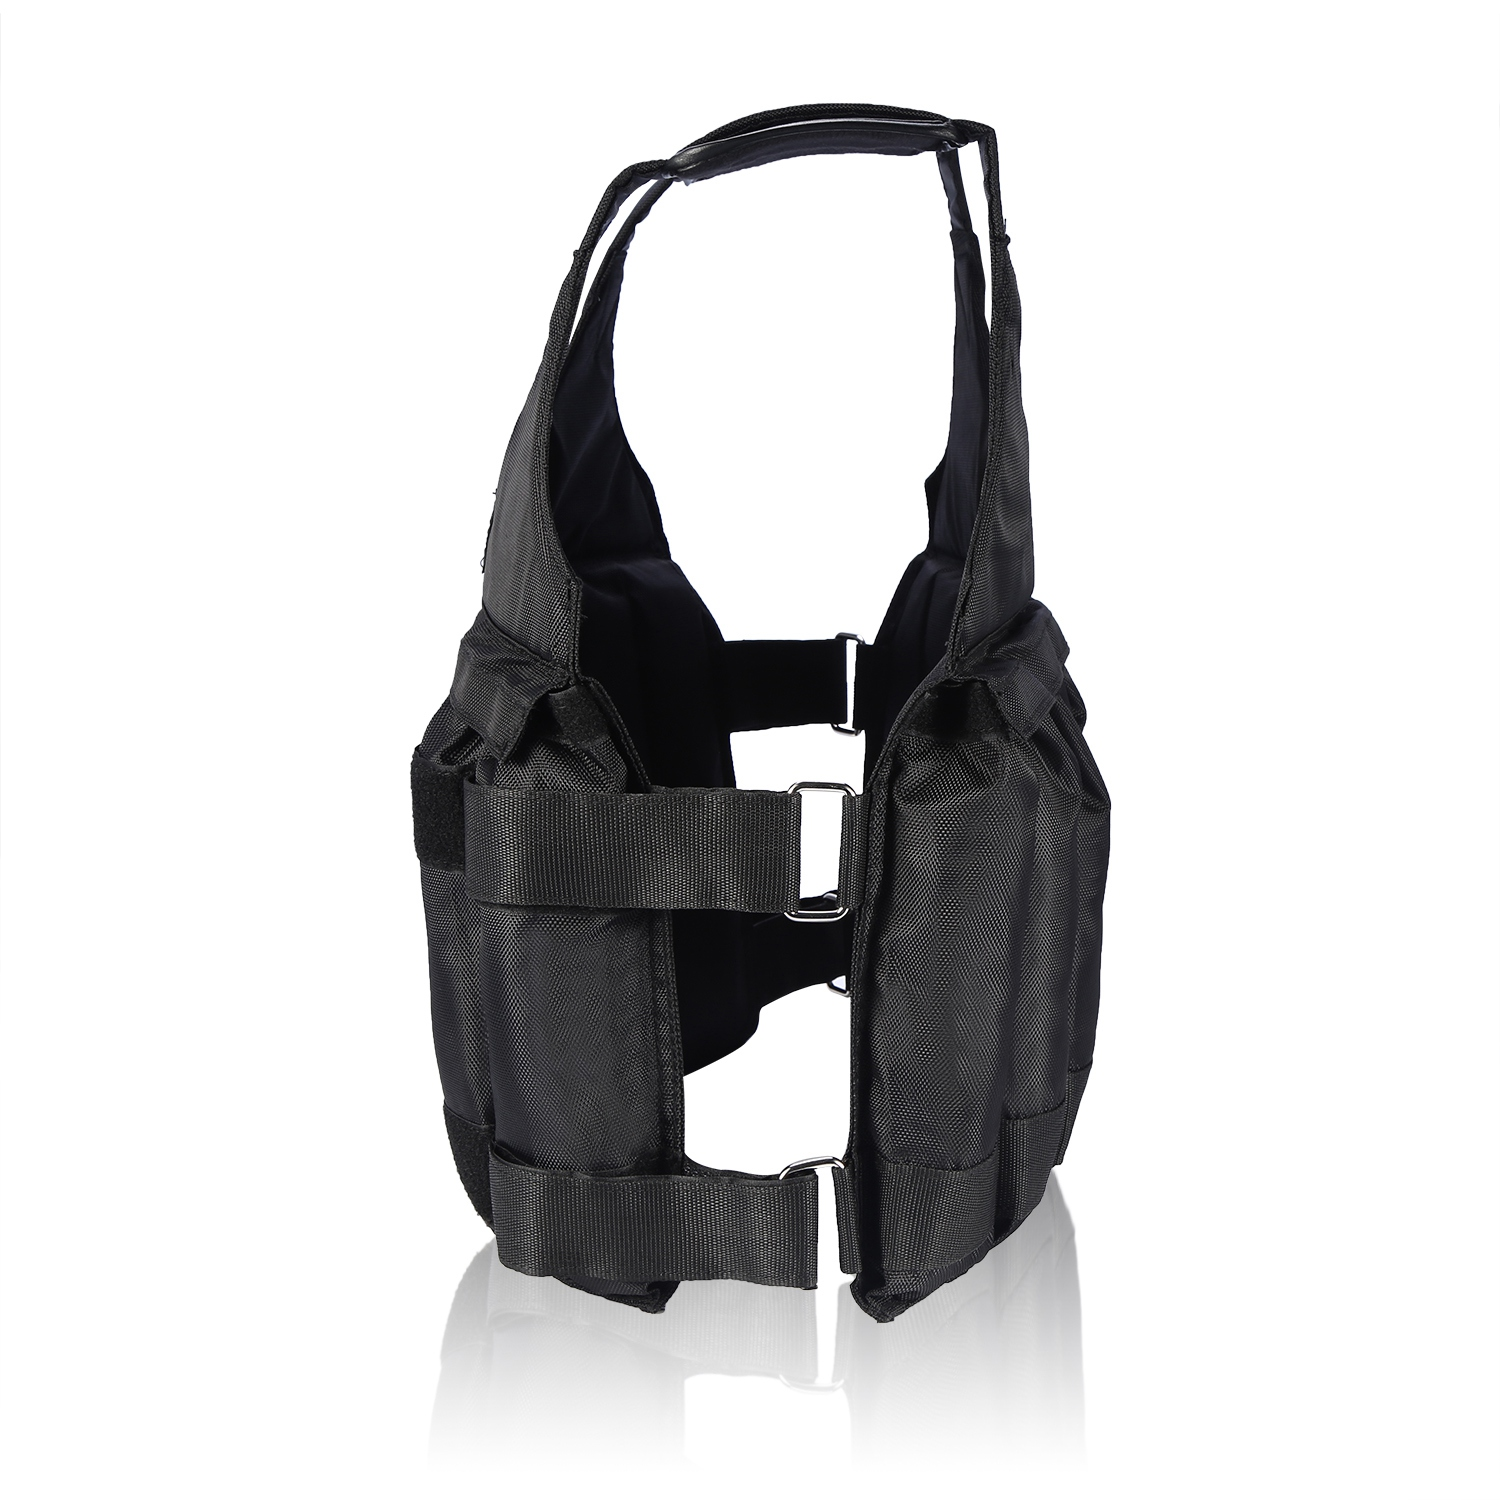 Weighted-Vest-44-110lbs-Weight-Workout-Exercise-Body-Training-Crossfit-Equipment thumbnail 14